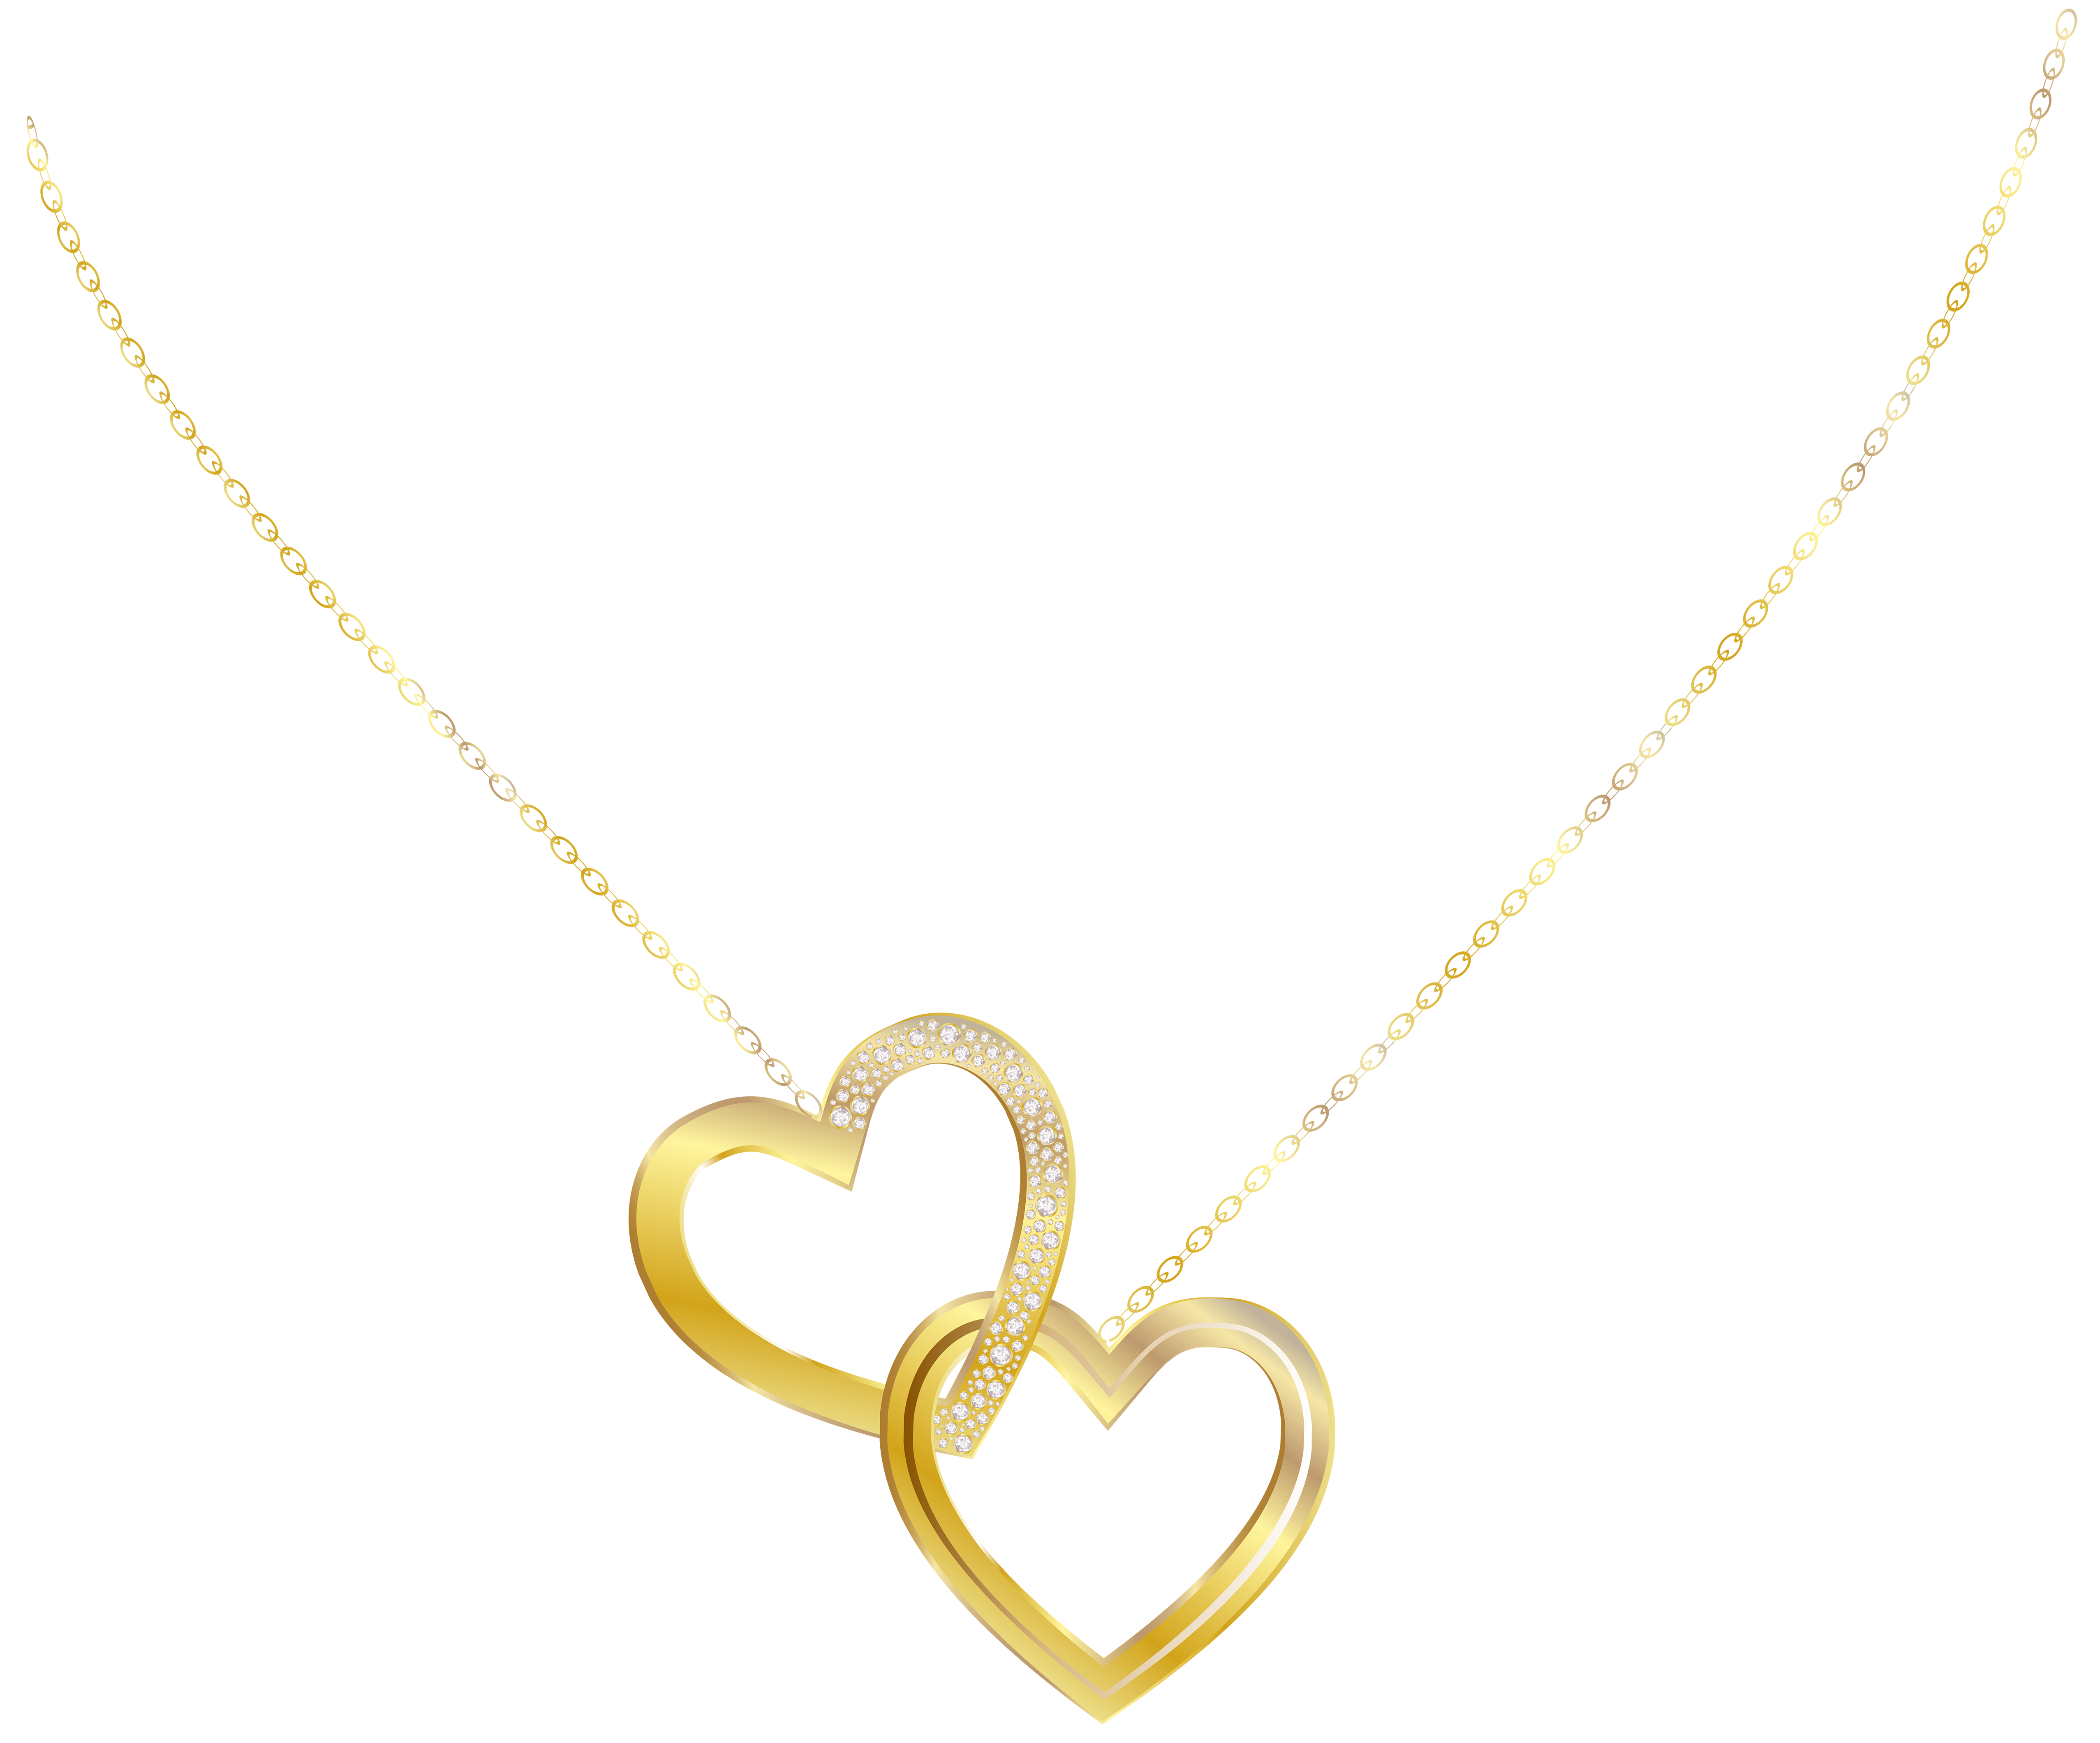 Necklace clipart neklace. Of typegoodies me isgzh